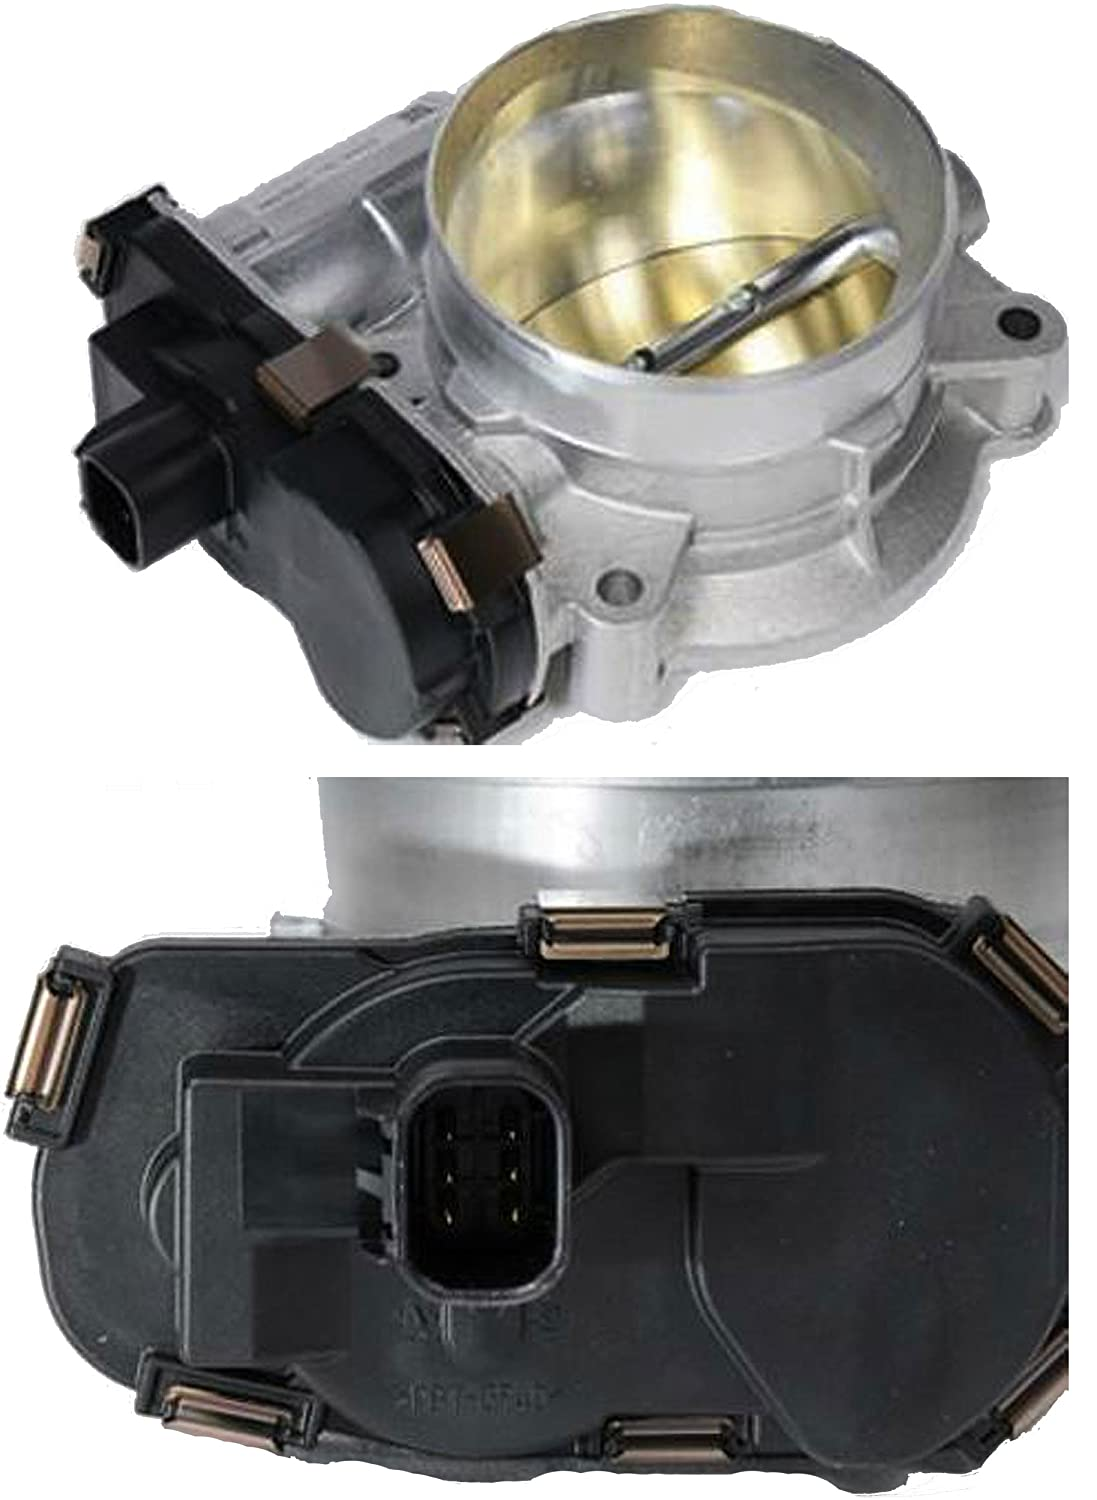 APDTY 112539 Electric Throttle Body Assembly Fits Select 2009-2016 Cadillac, Chevrolet, GMC, Hummer (Replaces 217-3151, 12601387, 12629992, 12589235, 2173151)